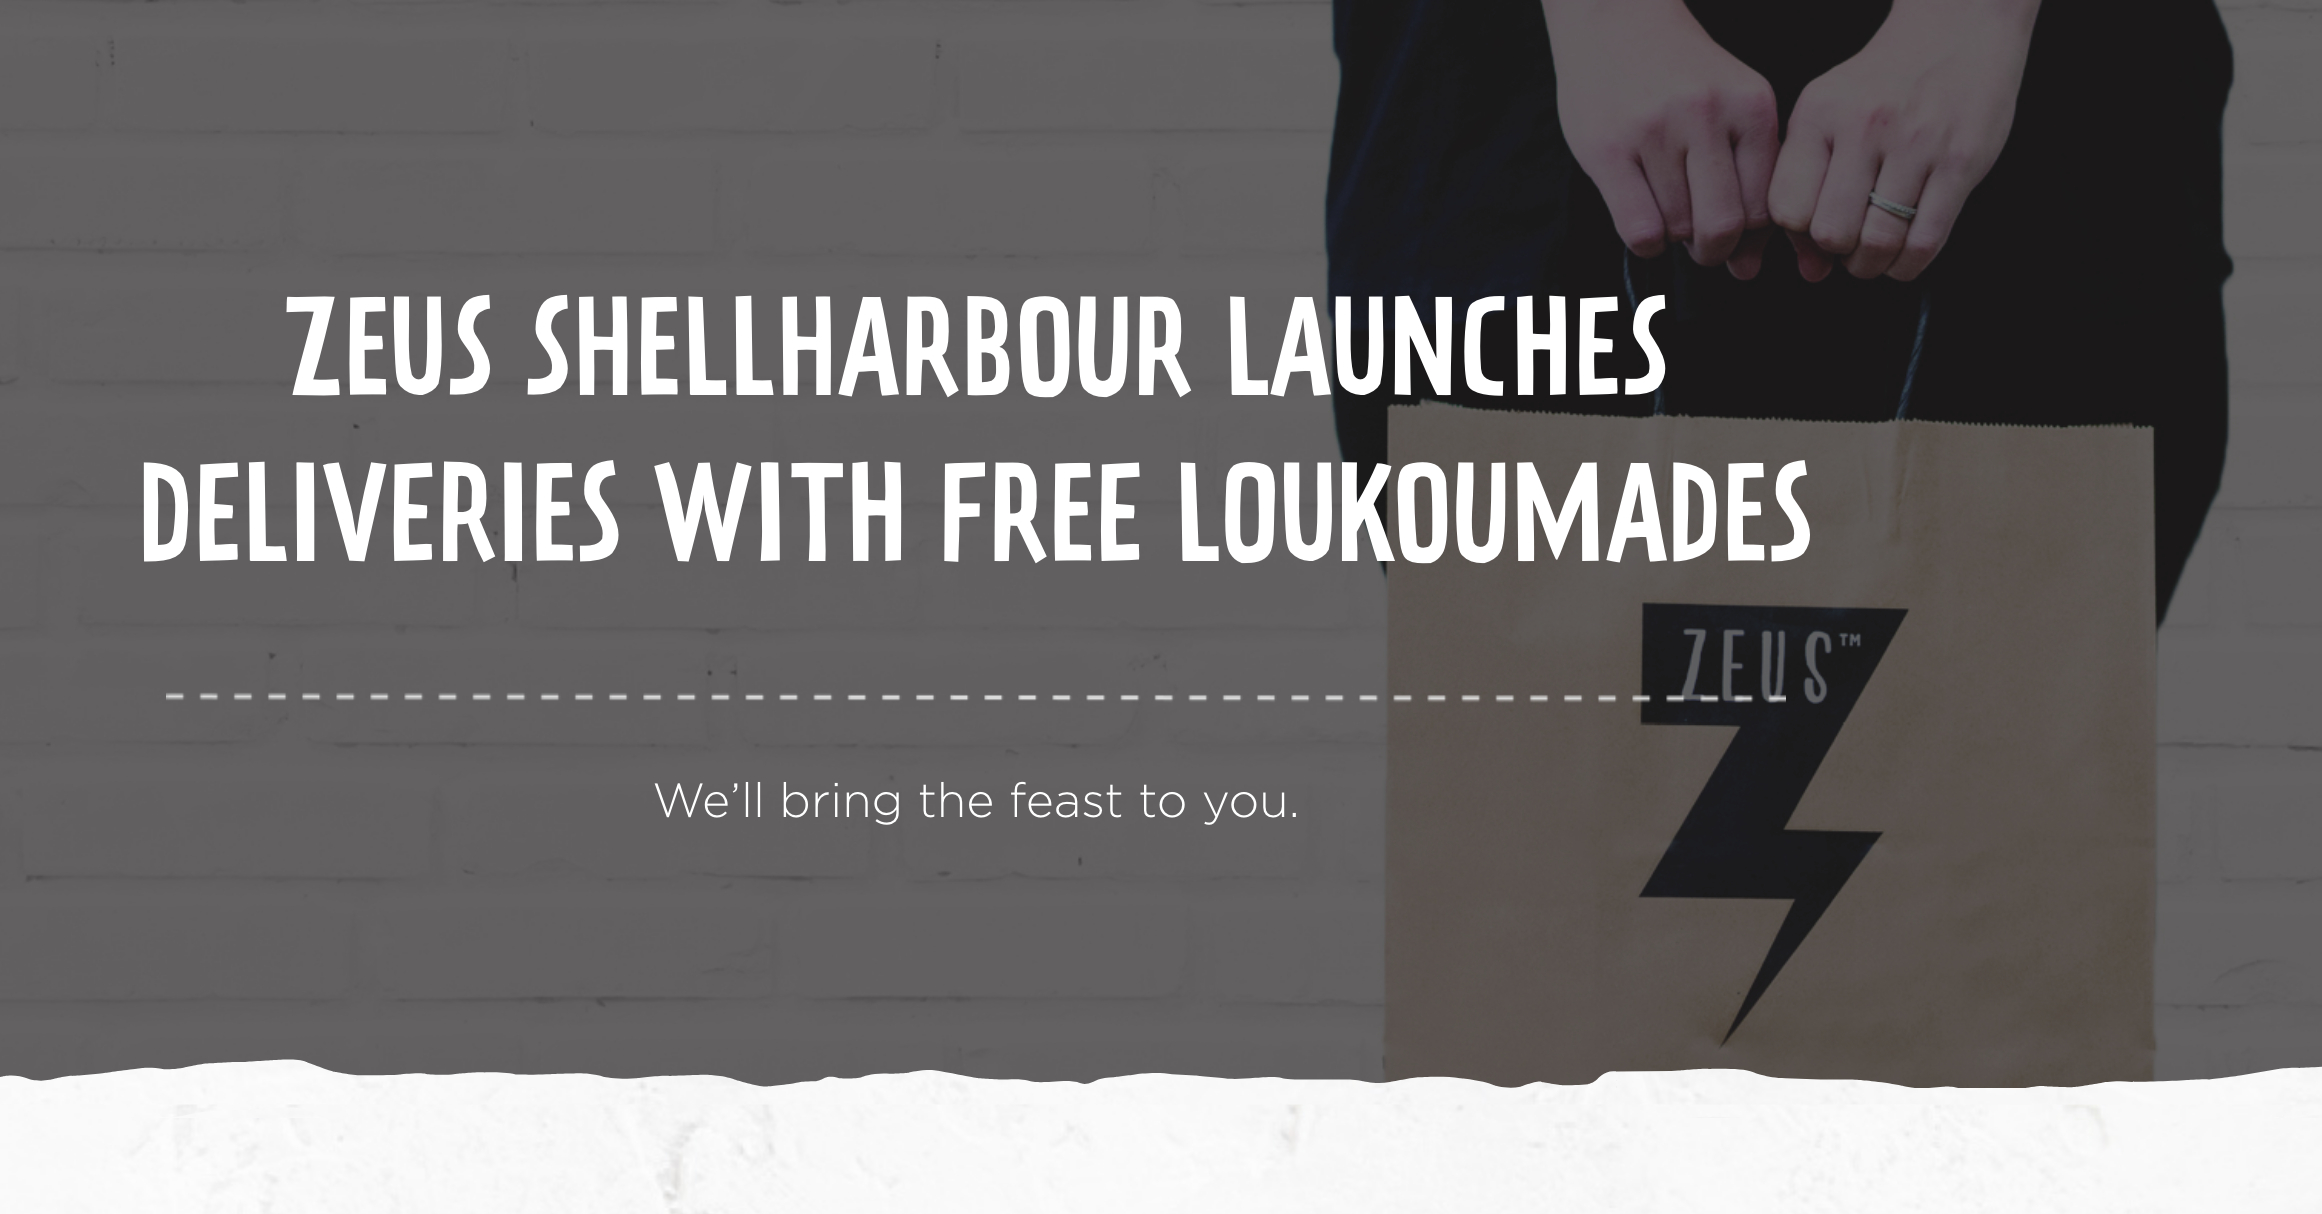 Zeus_Shellharbour_launches_deliveries_with_free_Loukoumades_-_Zeus_Street_Greek_-_2018-04-06_16.53.45.jpg